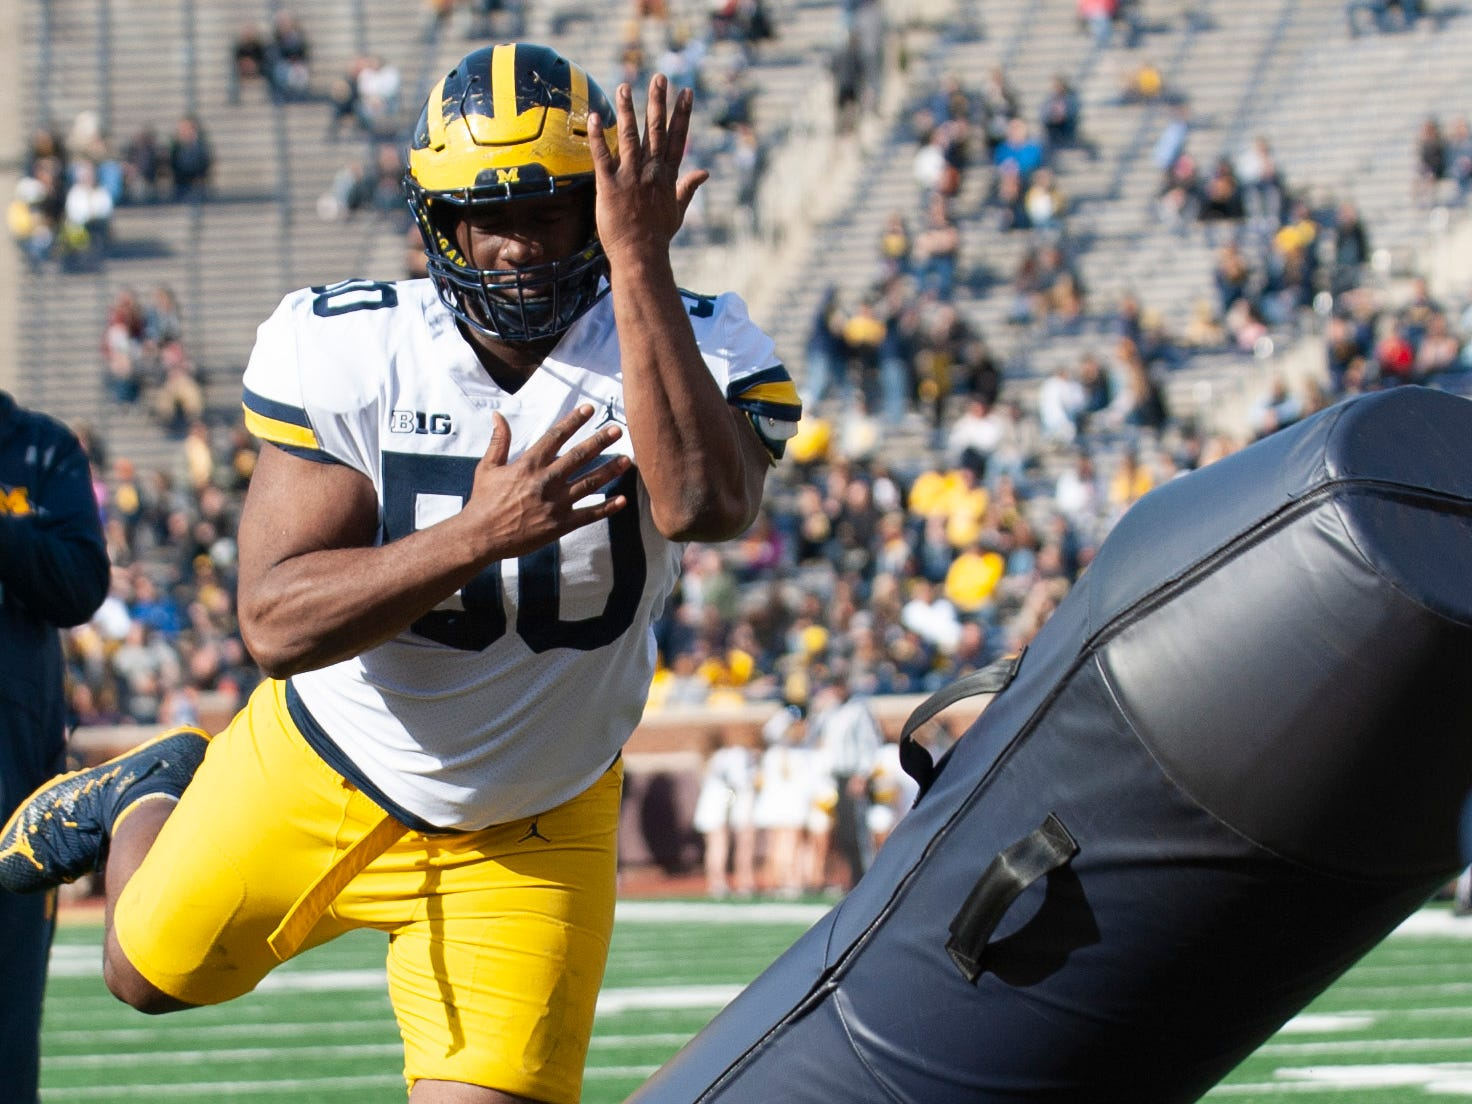 Michigan defensive lineman Michael Dwumfour knocks aside a tackling dummy during a drill.